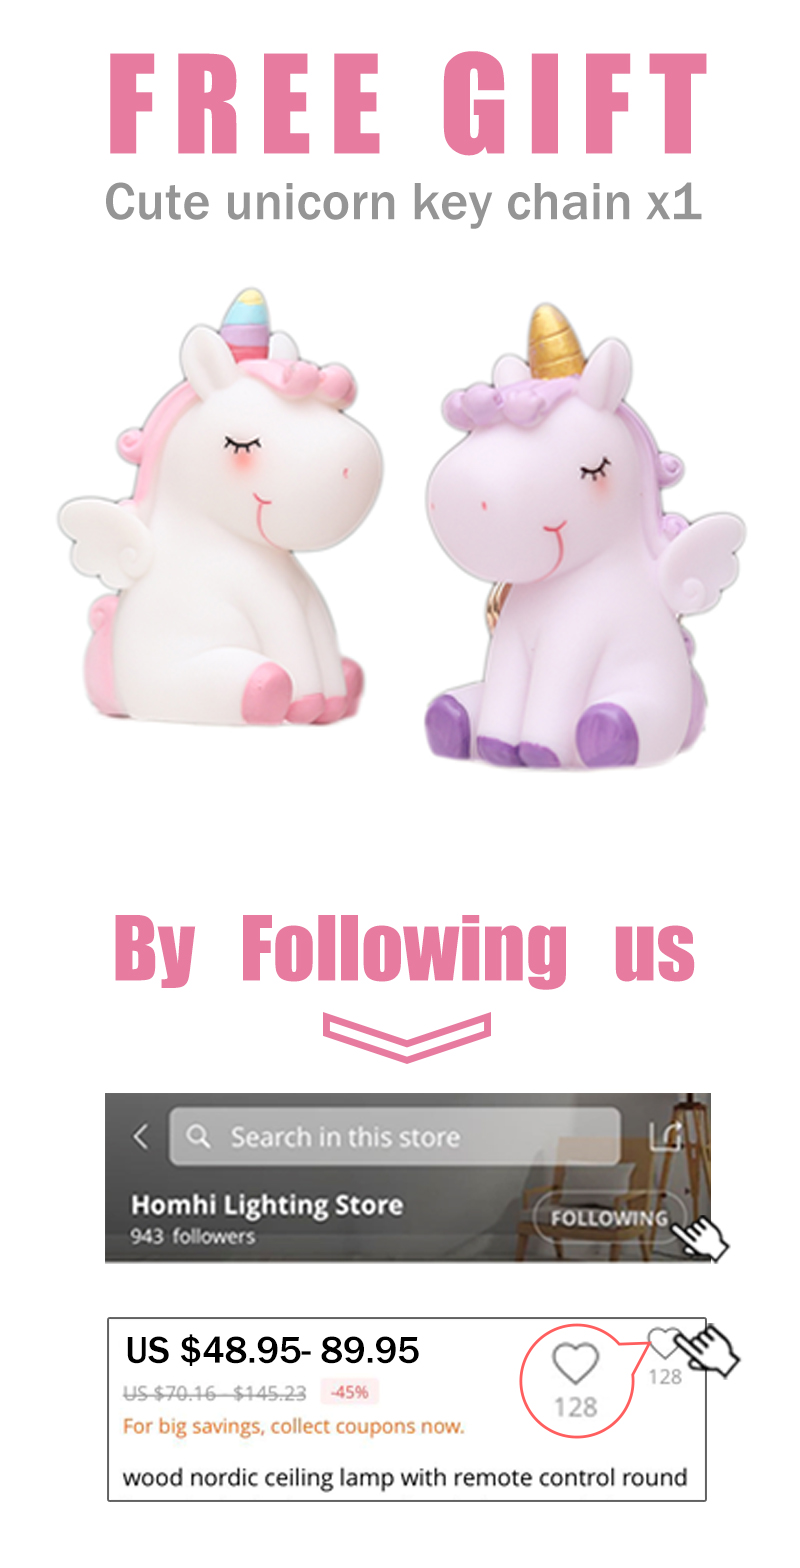 HTB1GMcqXQH0gK0jSZPiq6yvapXaK Unicorn kids room light led ceiling lights with remote control cartoon lampshade children room cute ceiling lamp deco child room